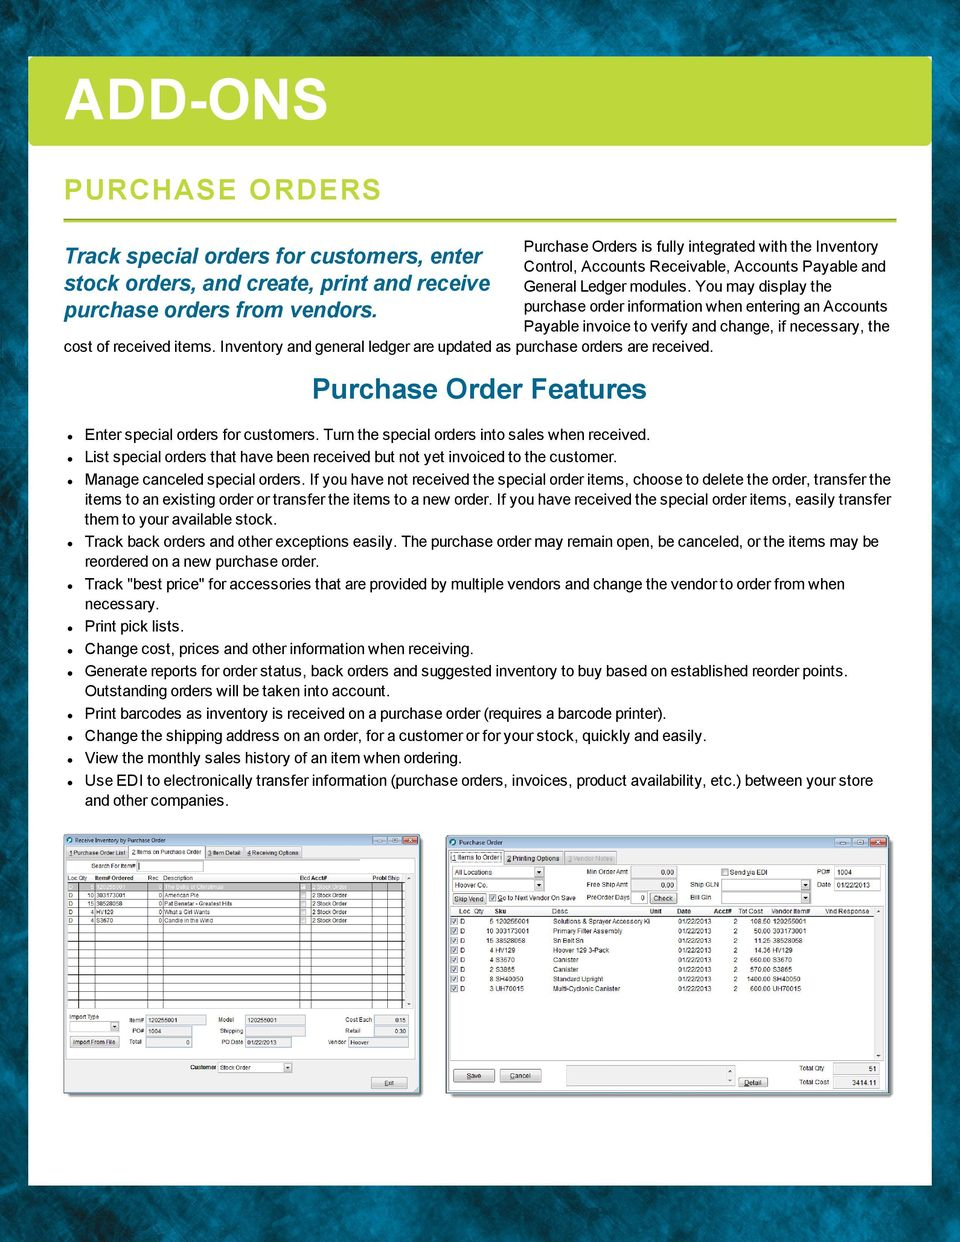 Inventory and genera edger are updated as purchase orders are received. Track specia orders for customers, enter stock orders, and create, print and receive purchase orders from vendors.